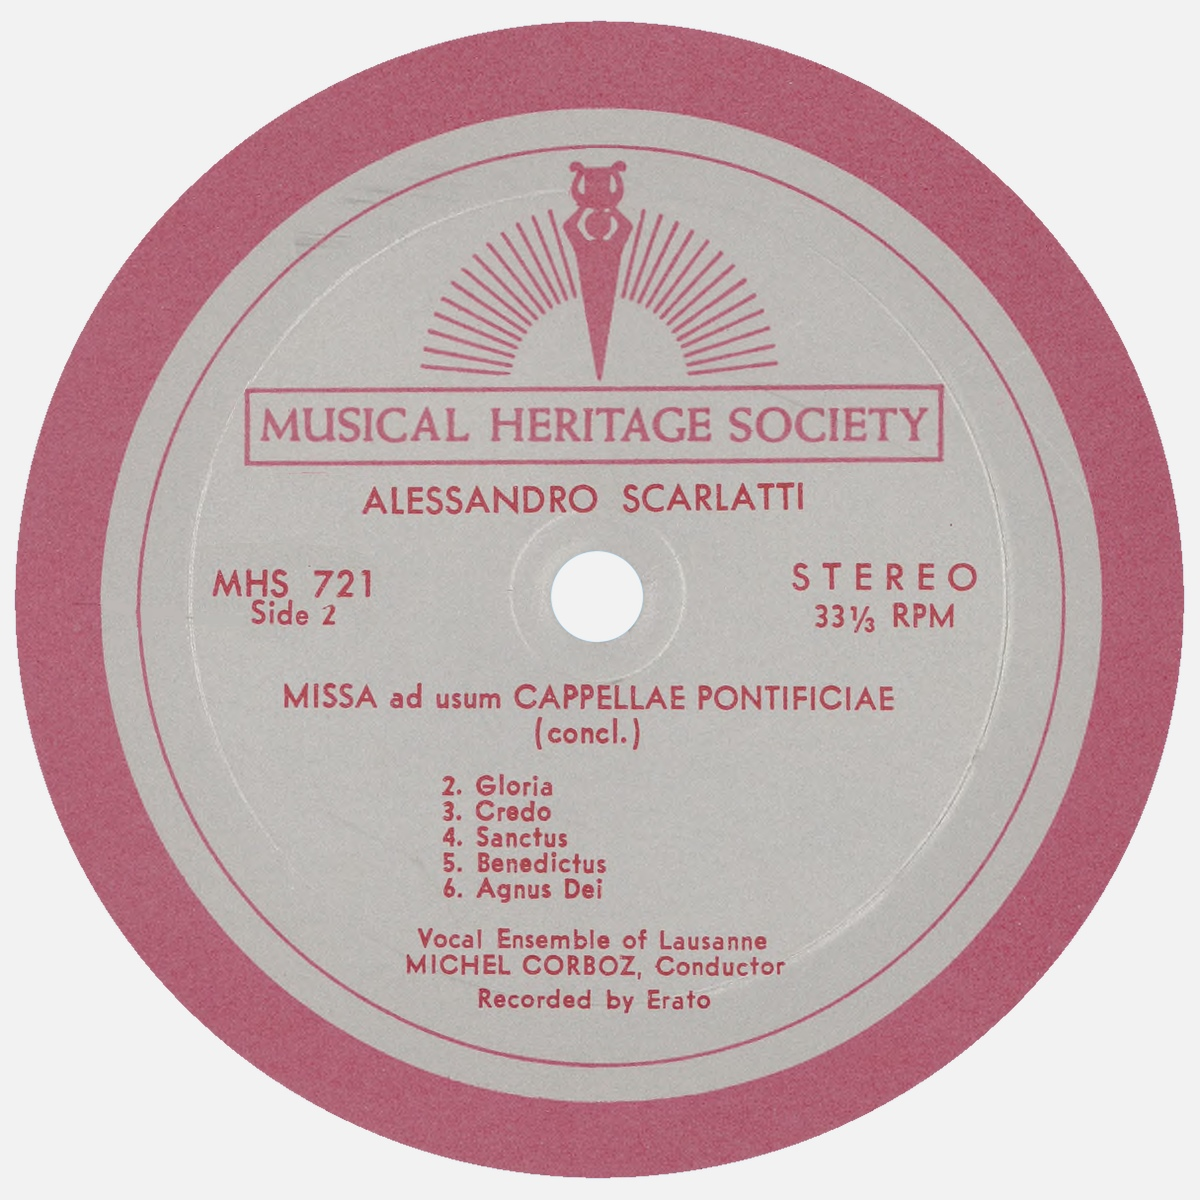 """Étiquette verso du disque """"The Musical Heritage Society Inc."""" MHS 721"""